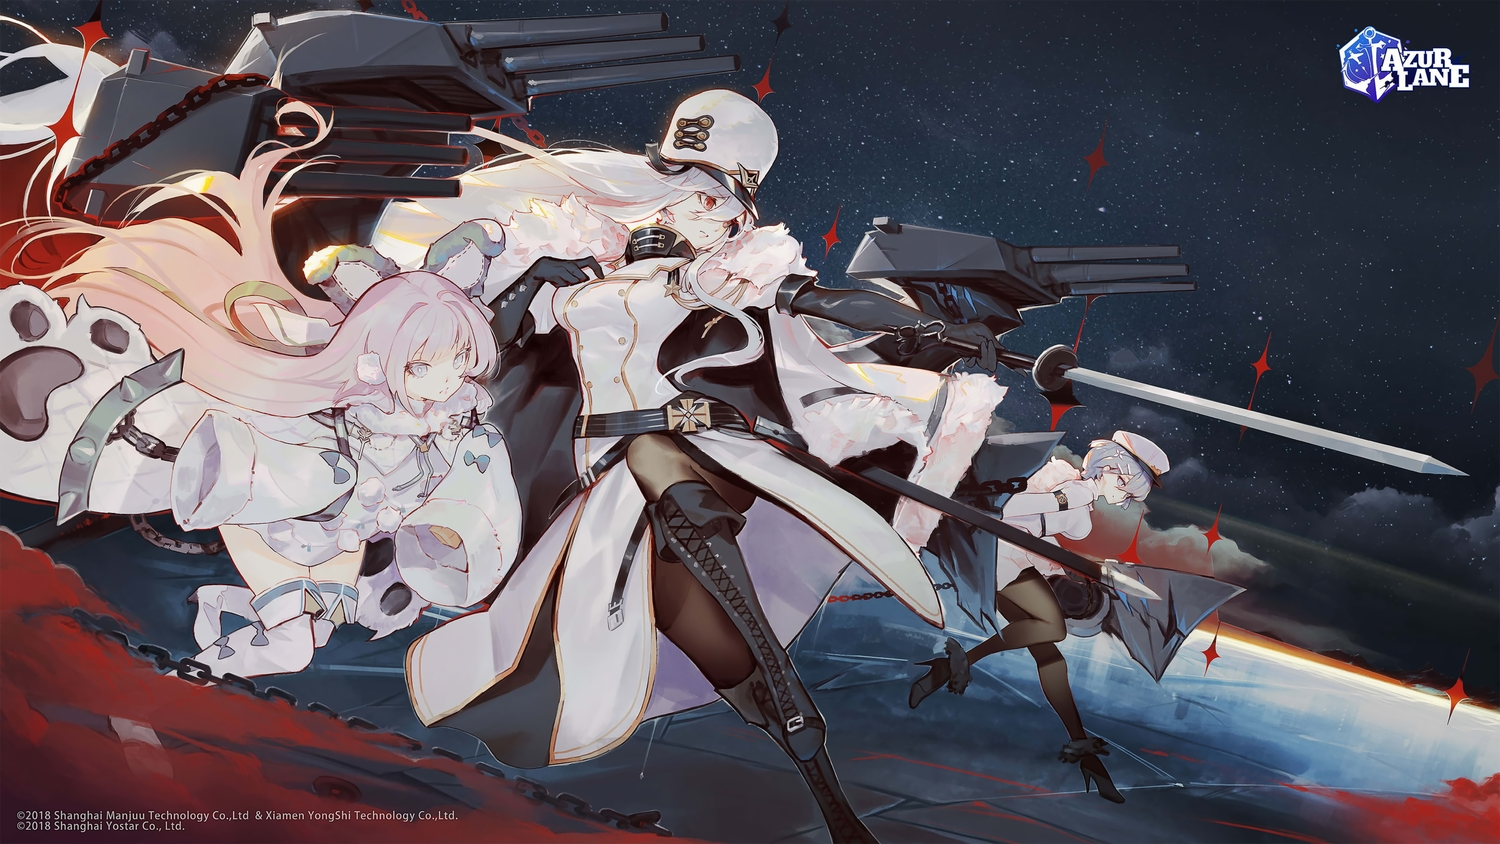 animal_ears anthropomorphism azur_lane blue_eyes blue_hair boots chapayev_(azur_lane) doomfest gloves hat logo loli long_hair night pantyhose pink_eyes pink_hair red_eyes short_hair sovetskaya_rossiya_(azur_lane) sword tashkent_(azur_lane) weapon white_hair